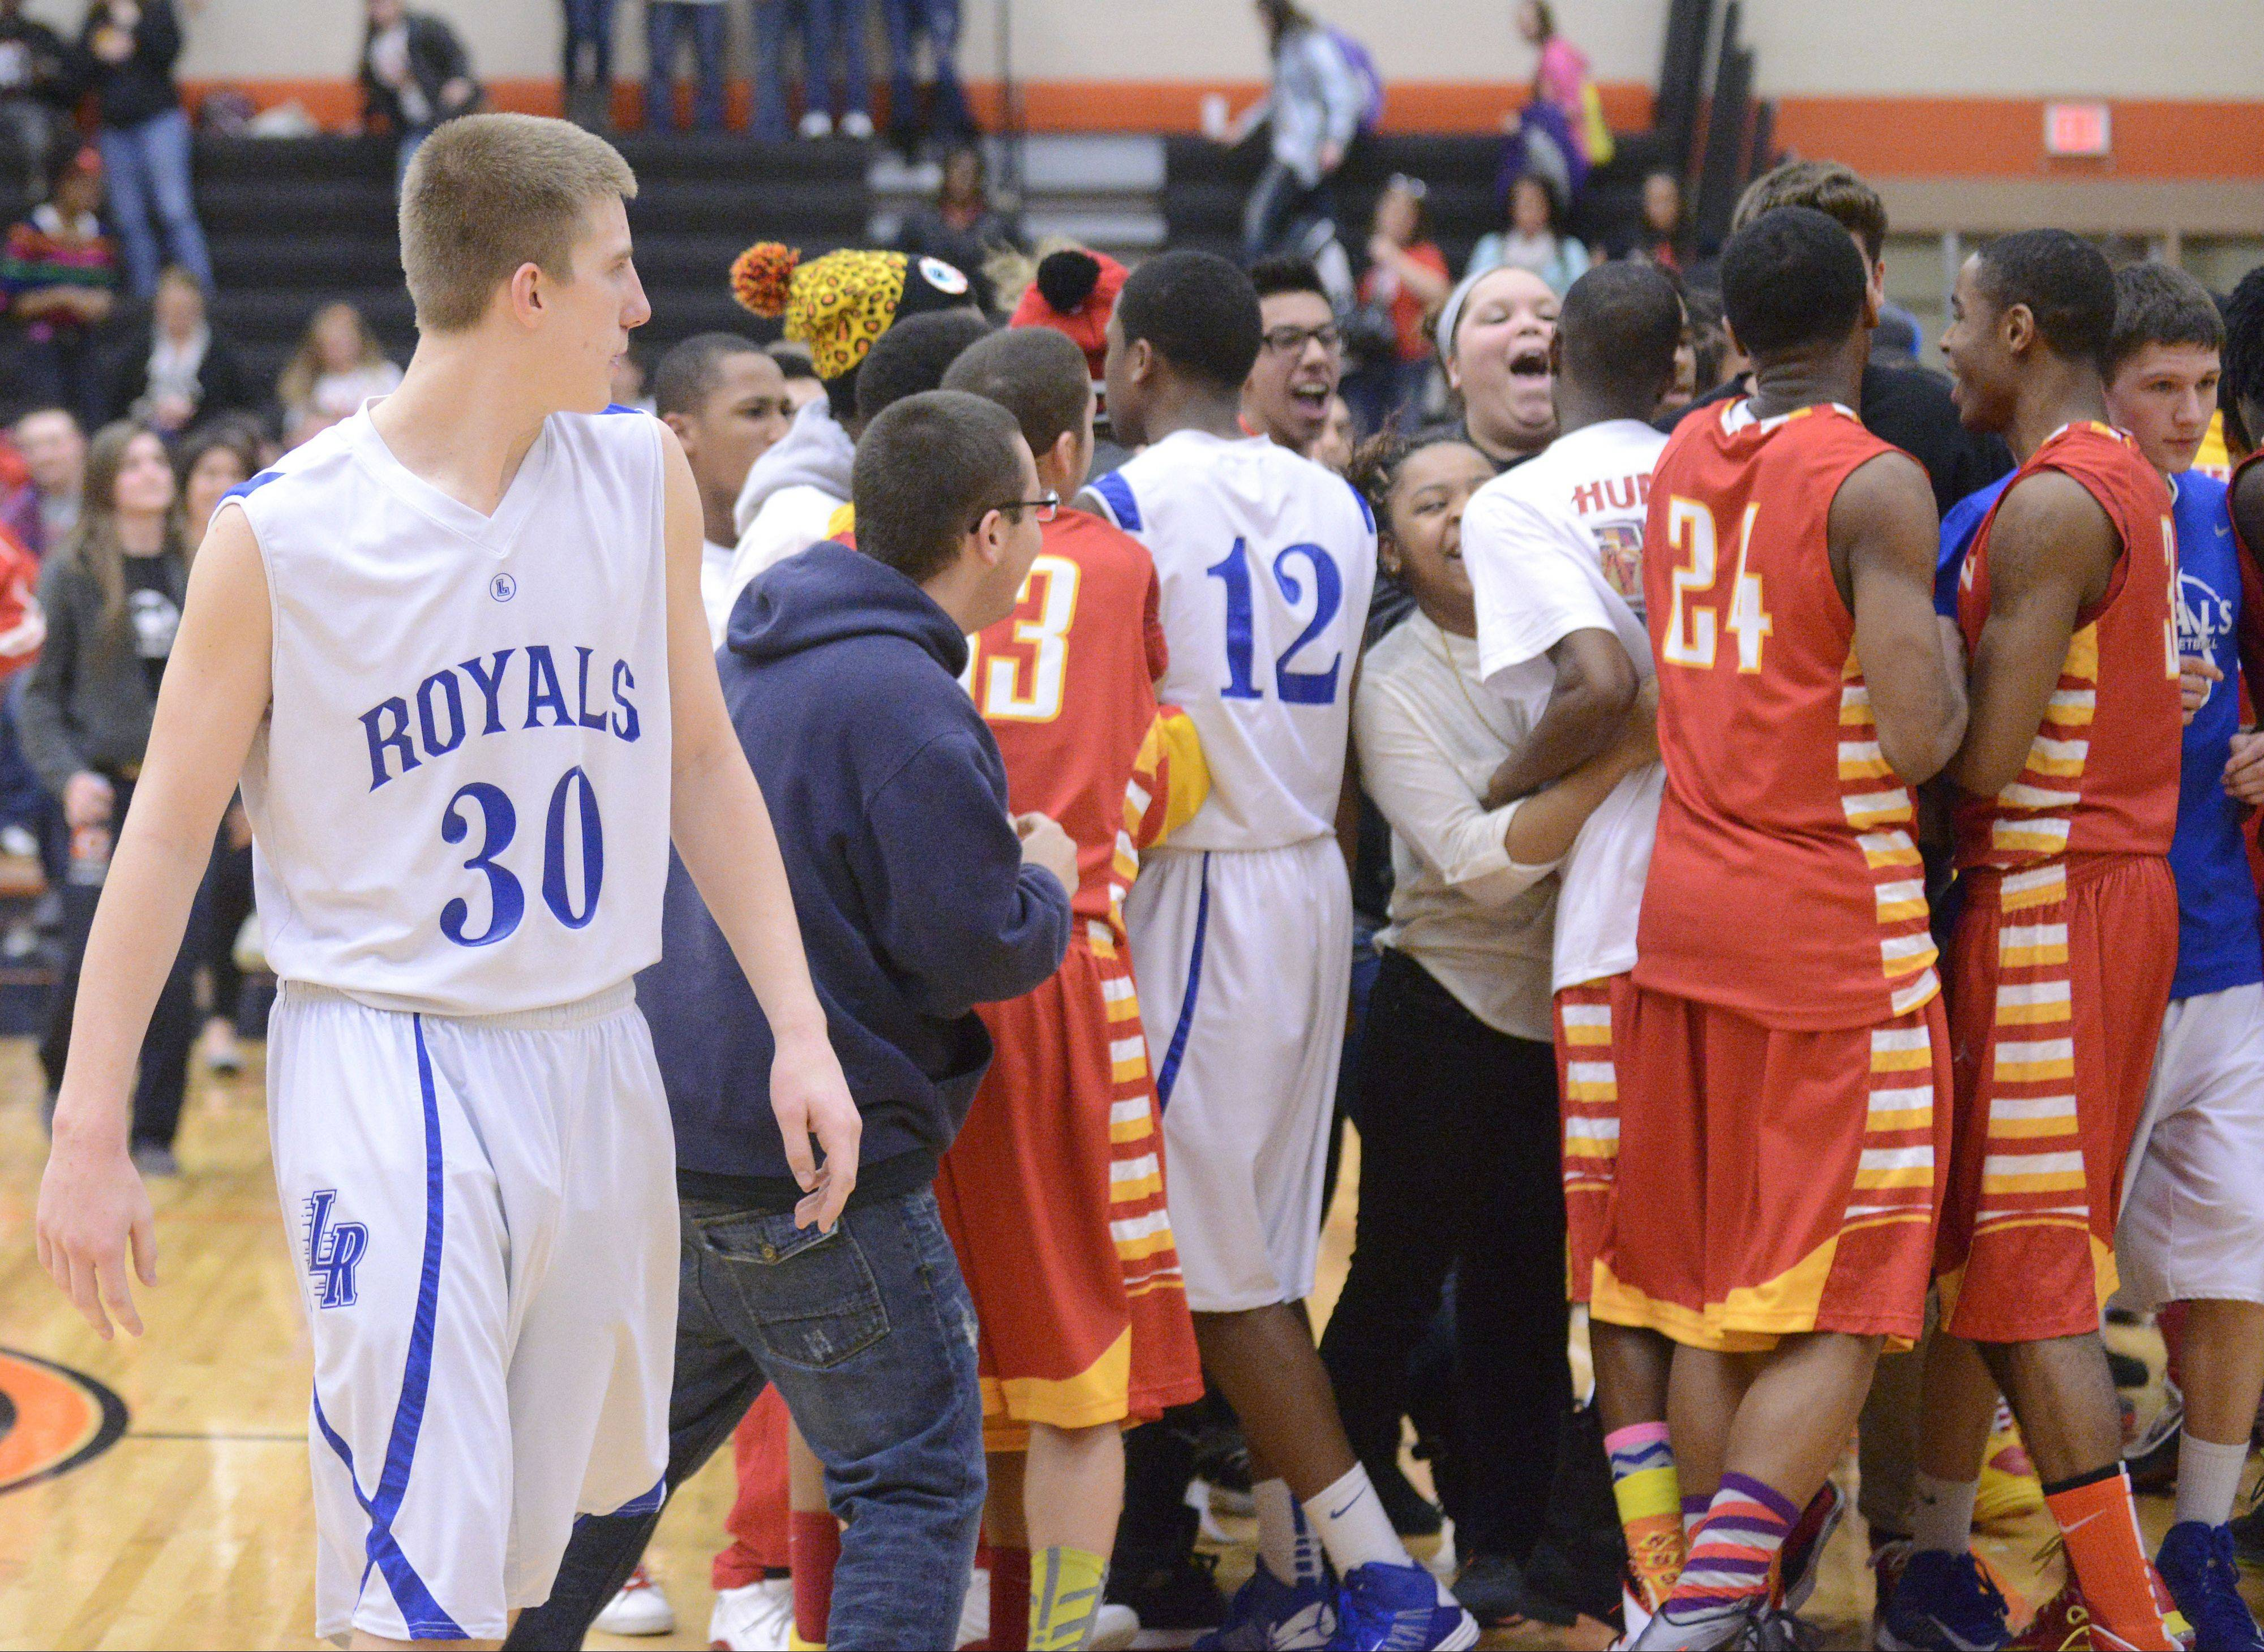 Larkin�s Brayden Royse (30) walks among celebrating teammates and fans from Rockford Jefferson, as his own teammate, Hannibal Marshall, 12, gets caught up in the crowd, after the Royals� loss to the J-Hawks in the Class 4A DeKalb sectional semifinals on Wednesday.